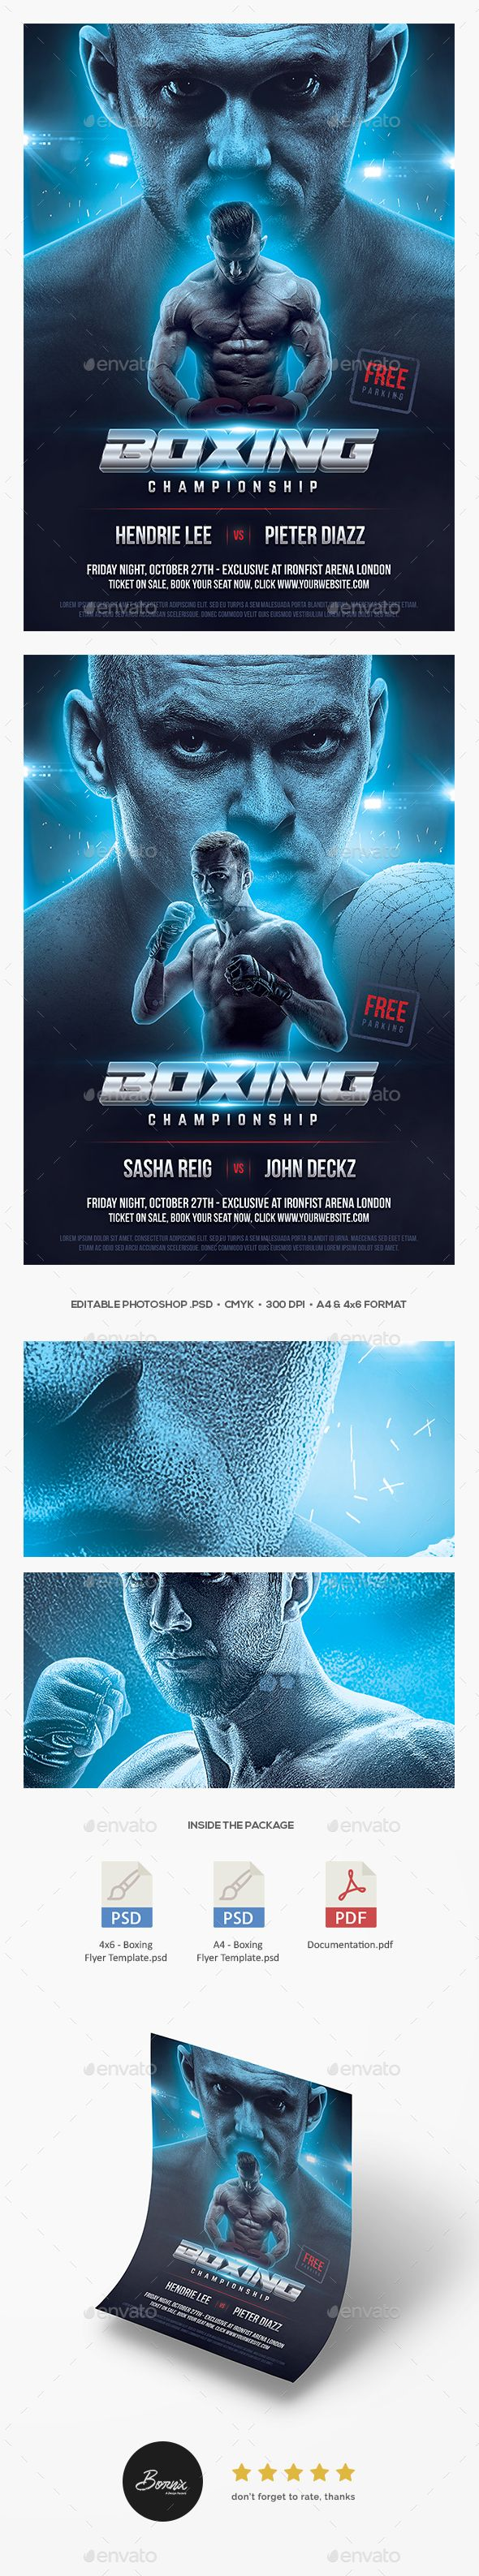 Boxing Flyer  Kickboxing Flyer Template And Ufc